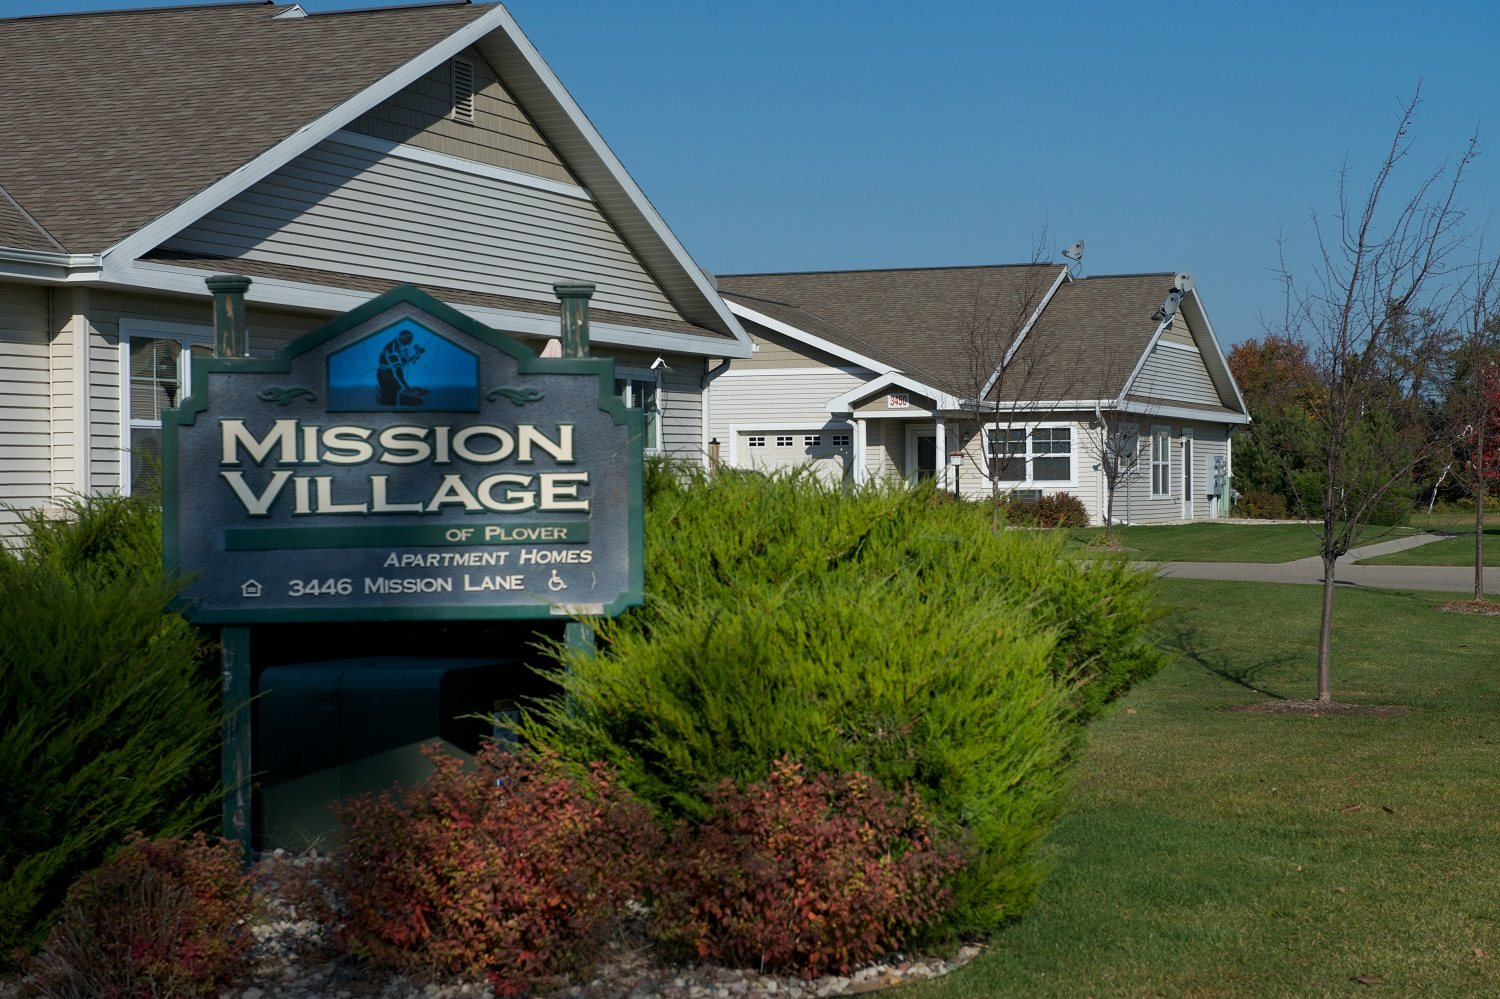 Mission Village of Plover